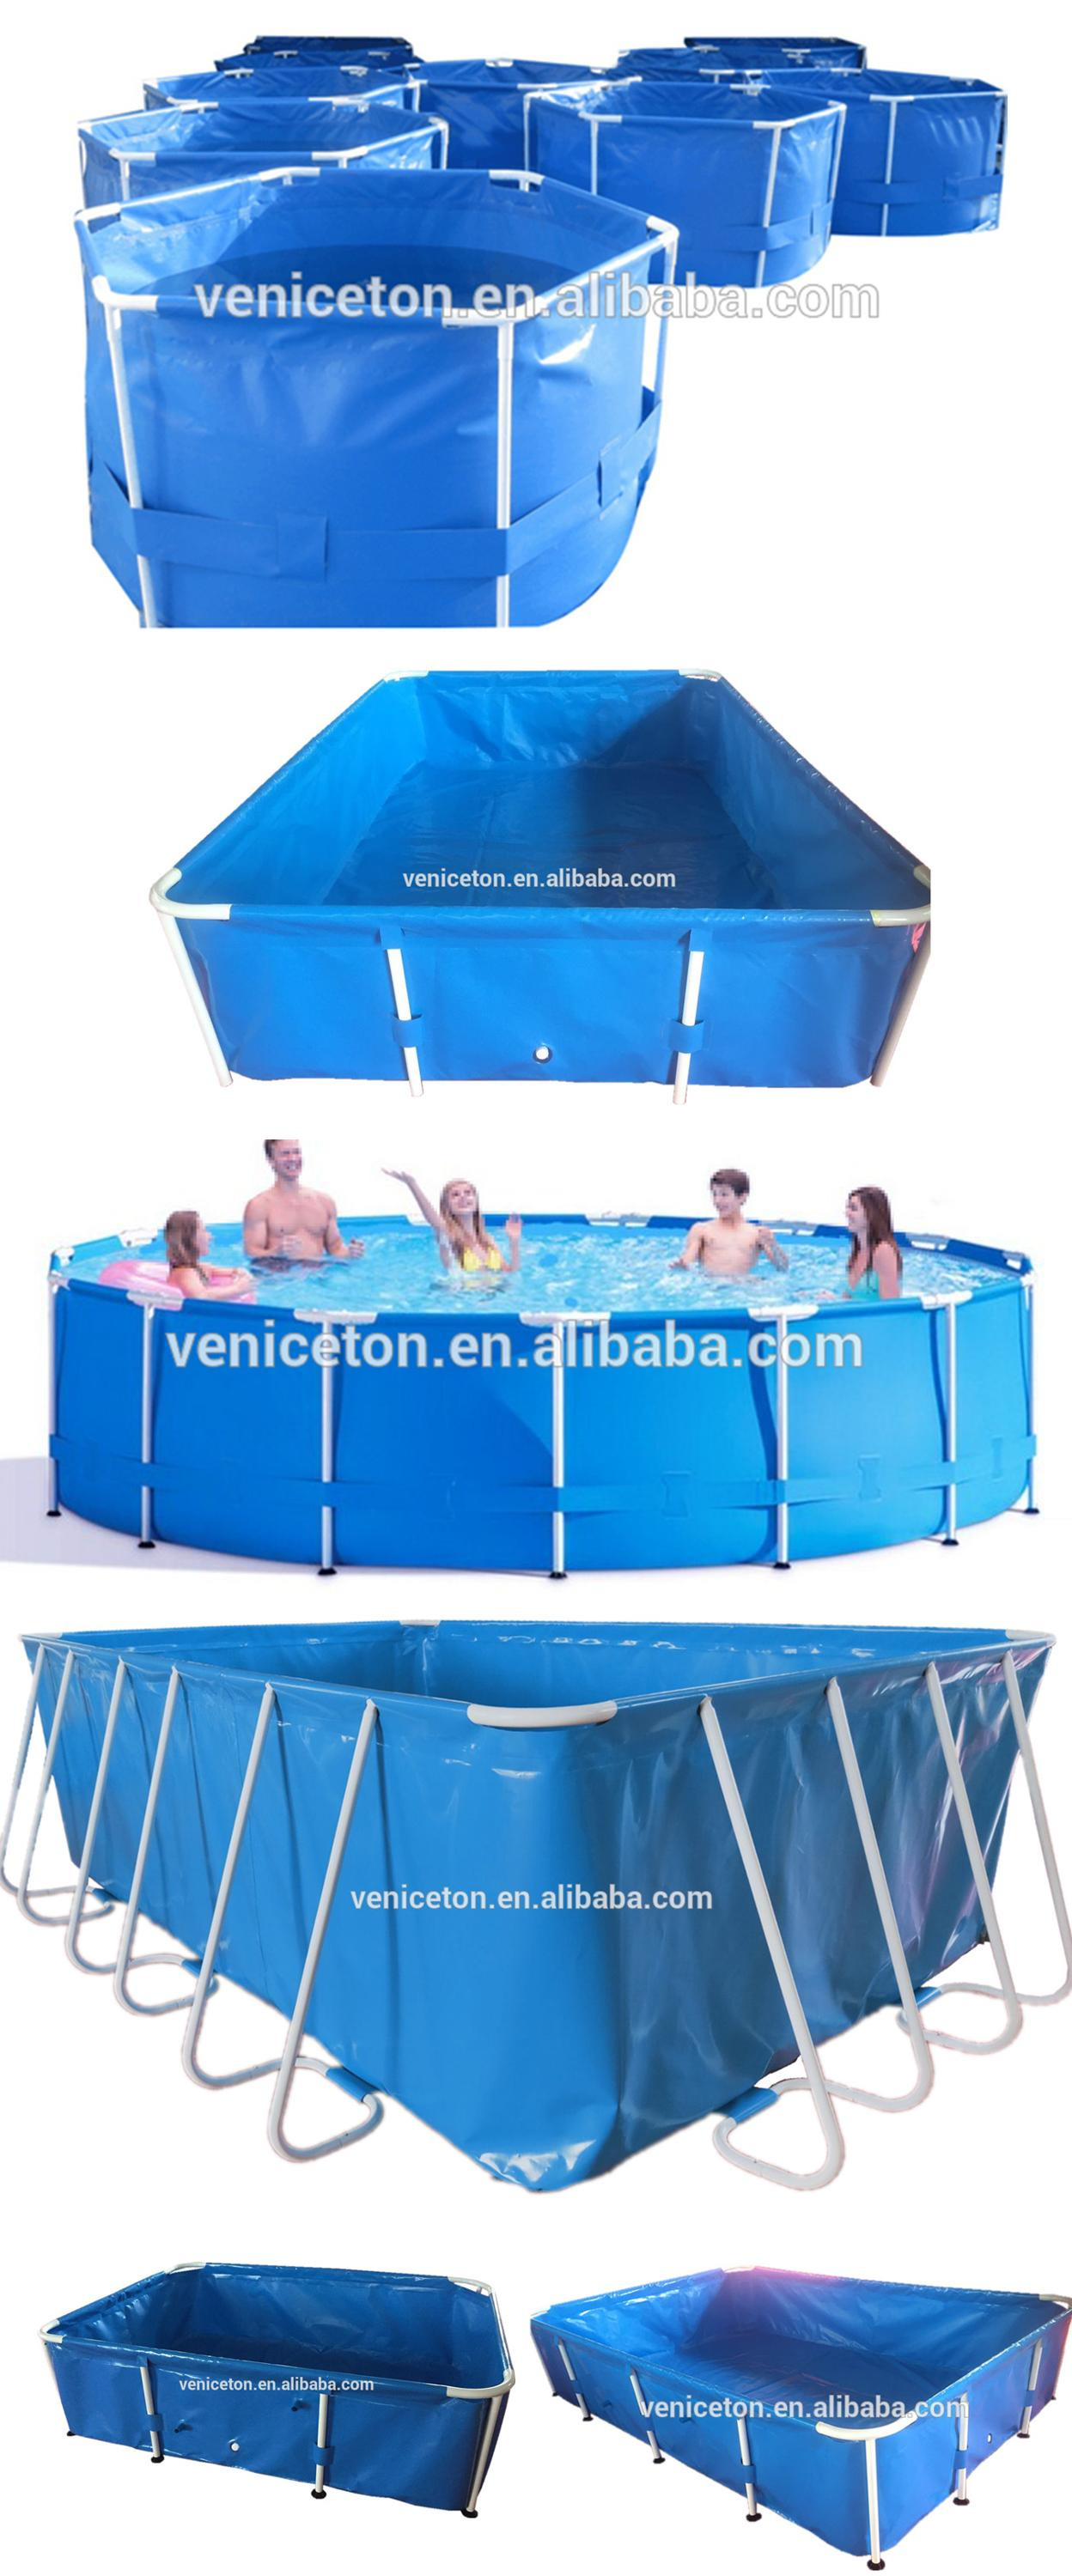 Small Plastic Pools for Sale Luxury Veniceton Bestway wholesale Plastic Clean Swimming Pools for Sale with Best Price Buy Used Swimming Pool for Sale Plastic Swimming